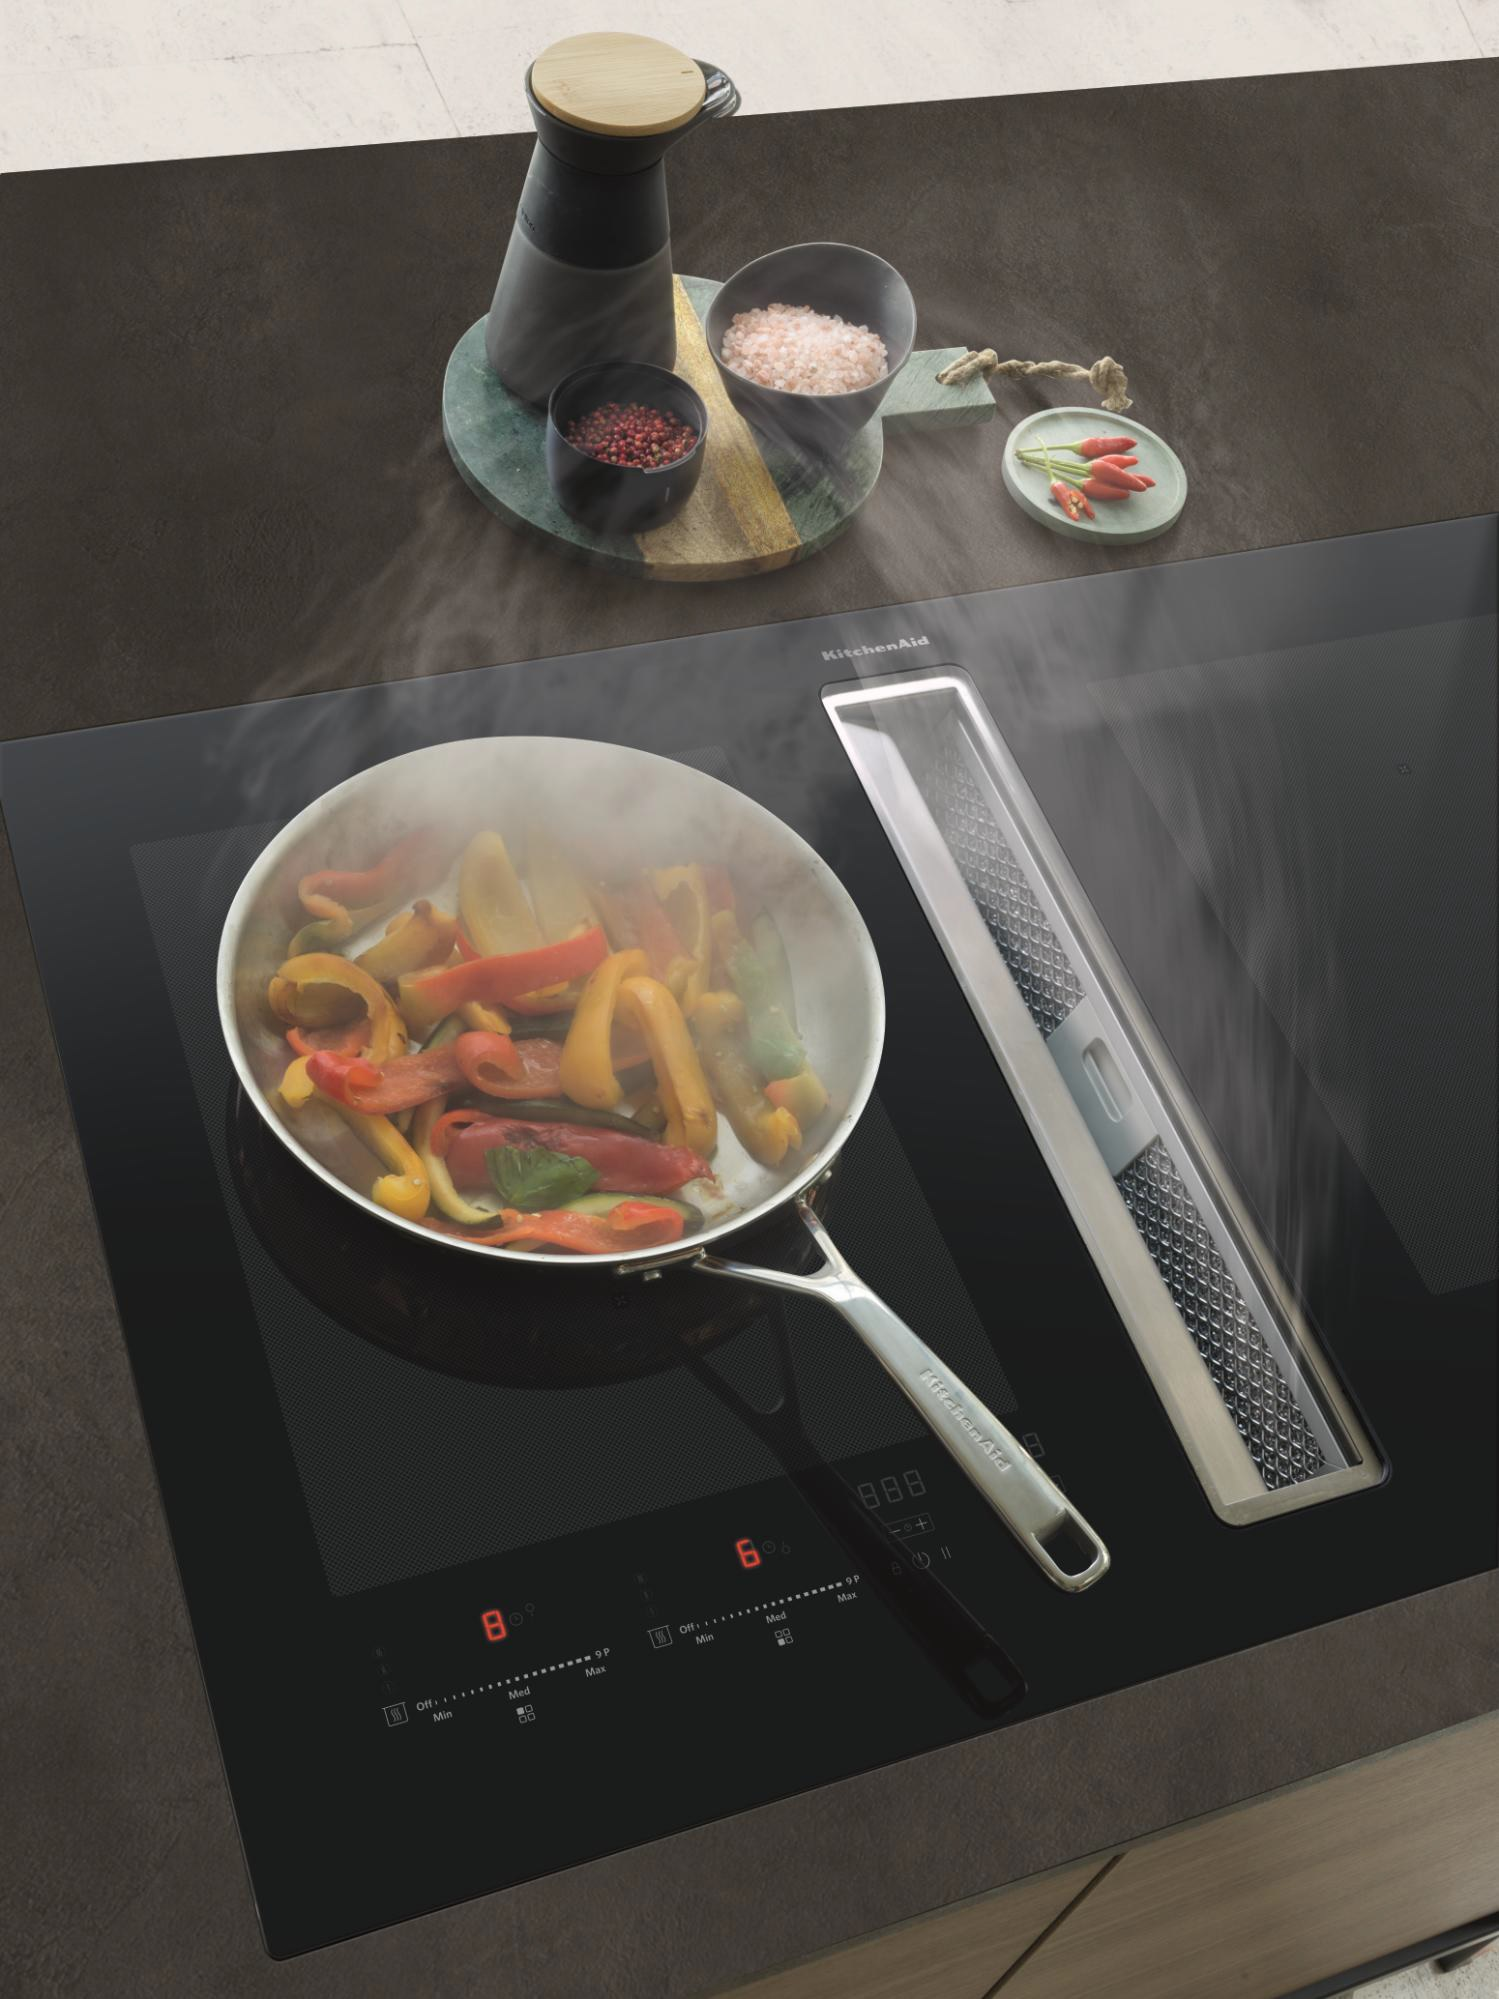 Table Induction Ventilee De Kitchenaid